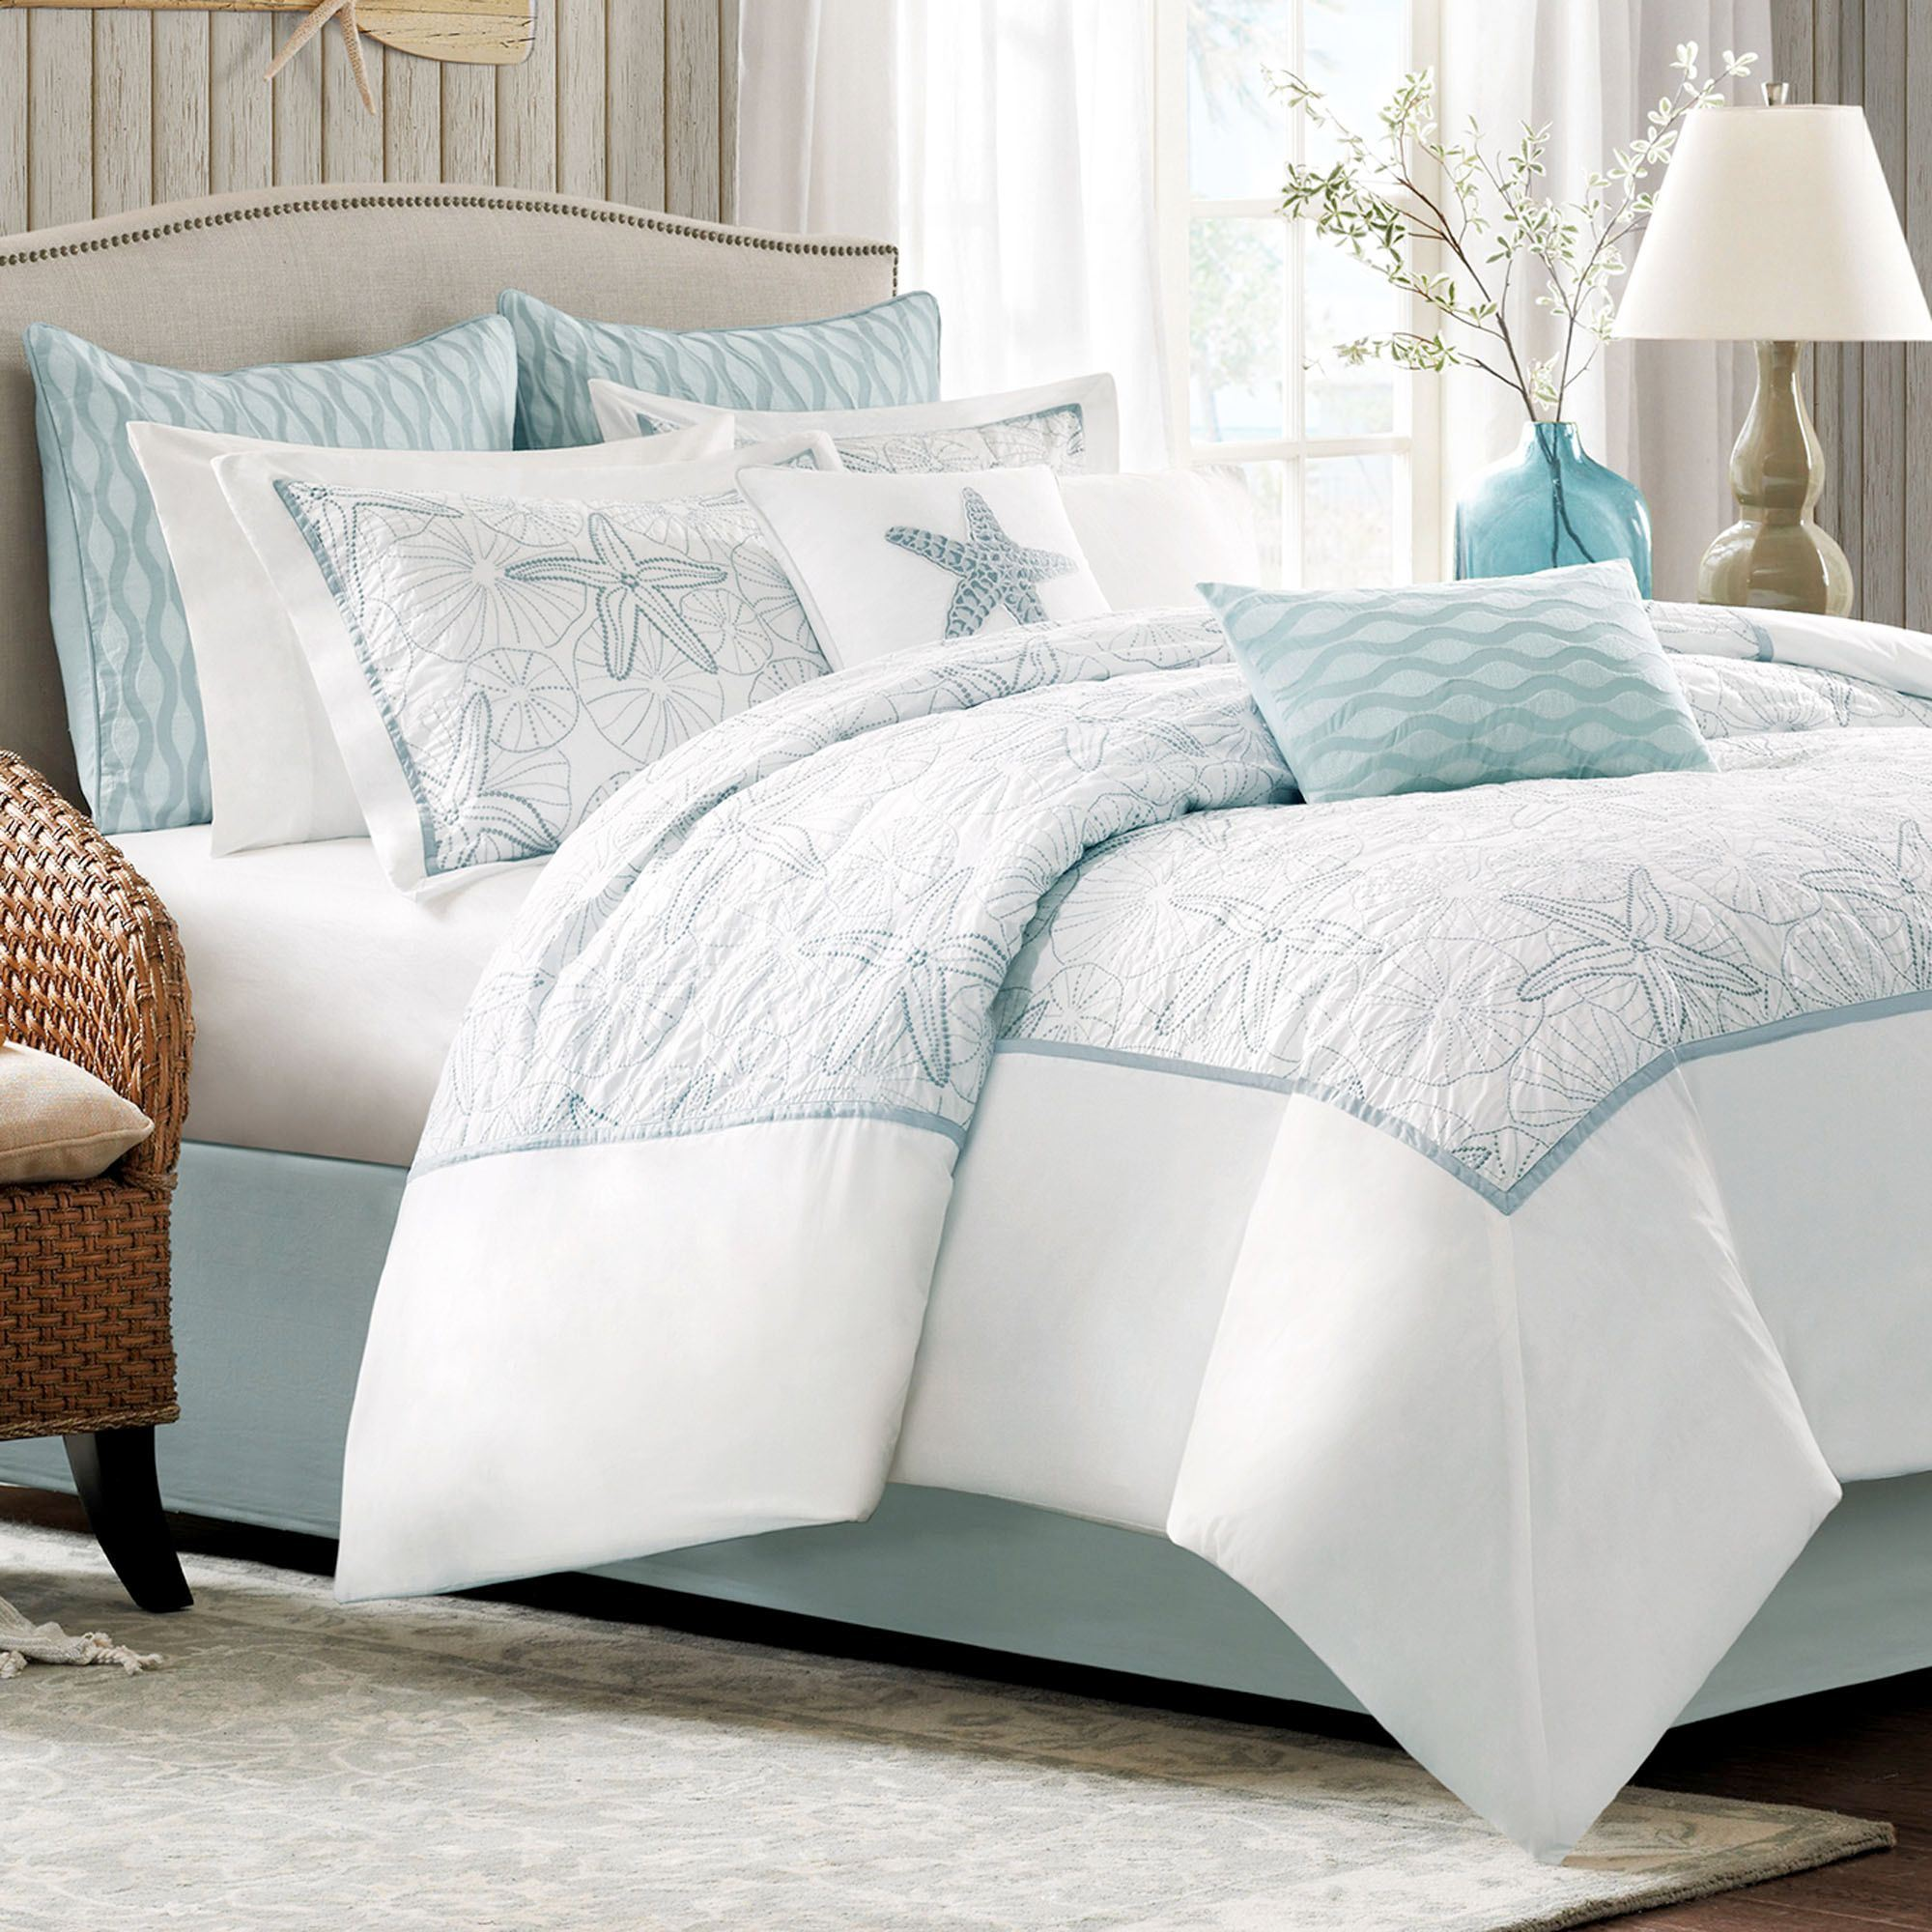 Maya Bay Embroidered Coastal Comforter Bedding